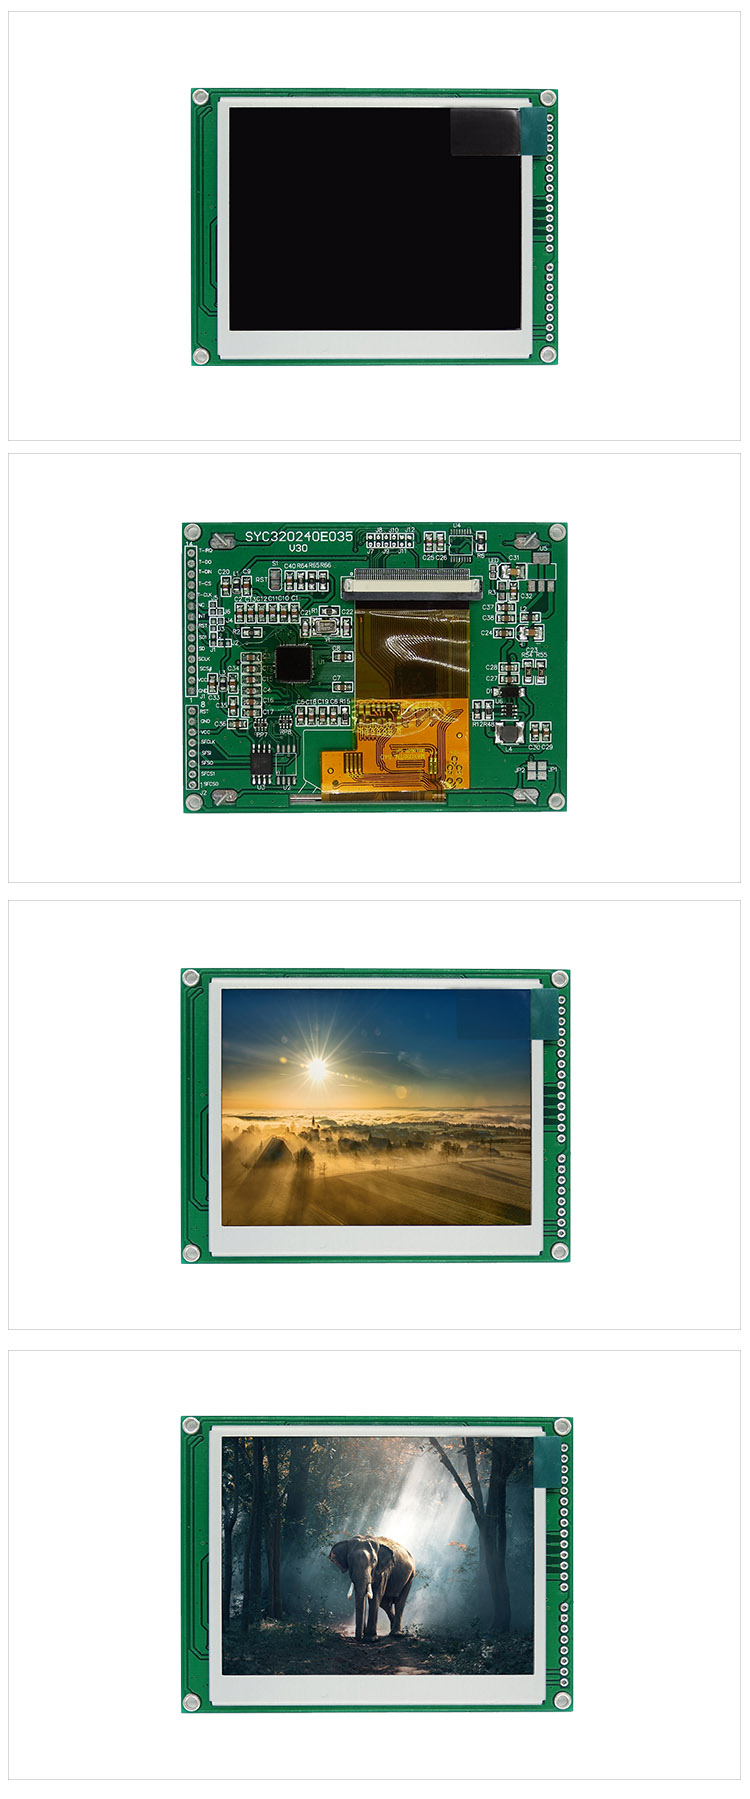 TCC(320240E035) RGB 3.5 inch tft display screen panel 8/14 pin spi interface serial module 320x240 tft lcd screen